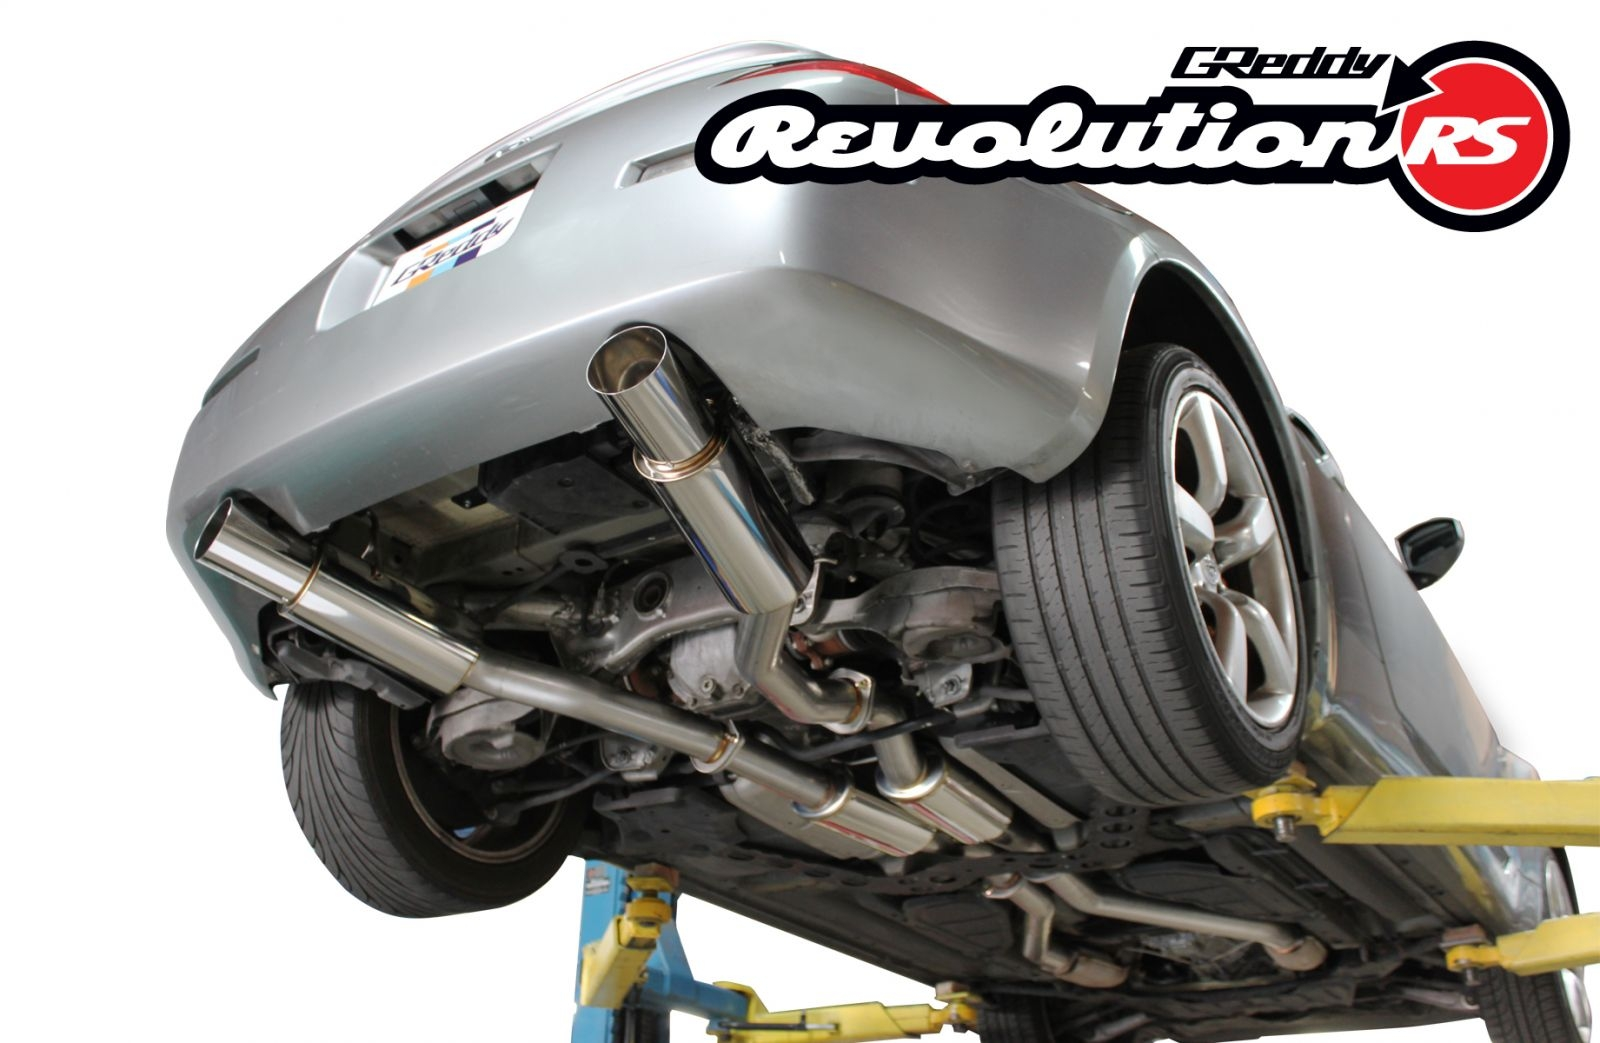 greddy revolution exhaust nissan 350z – je import performance